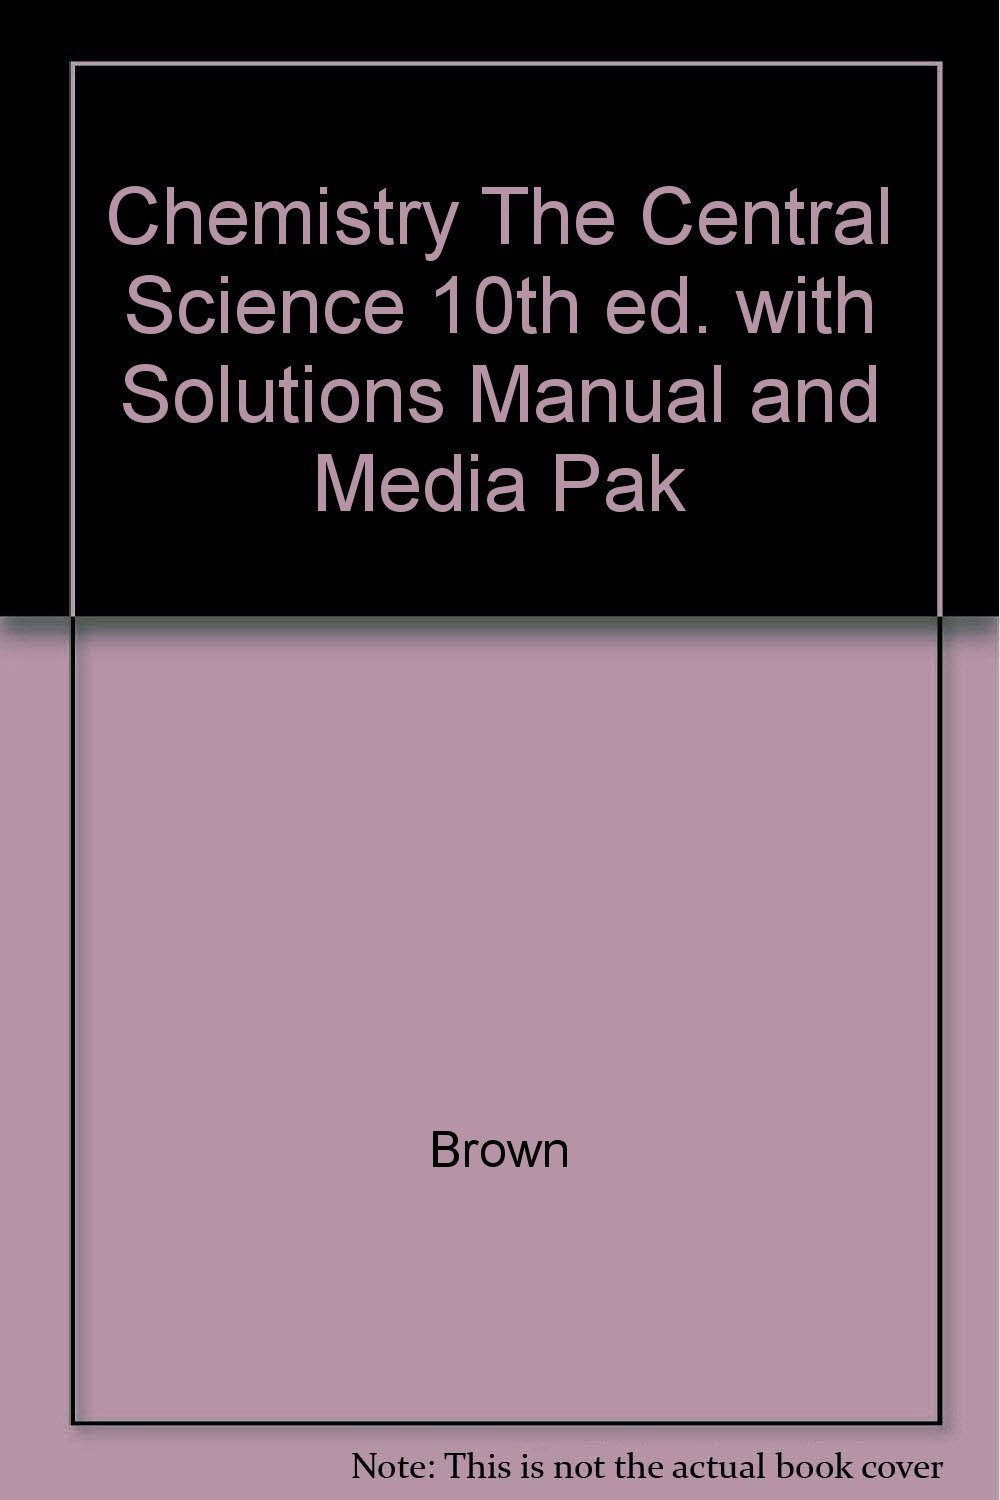 Chemistry The Central Science 10th ed. with Solutions Manual and Media Pak:  Brown, LeMay, Bursten: Amazon.com: Books